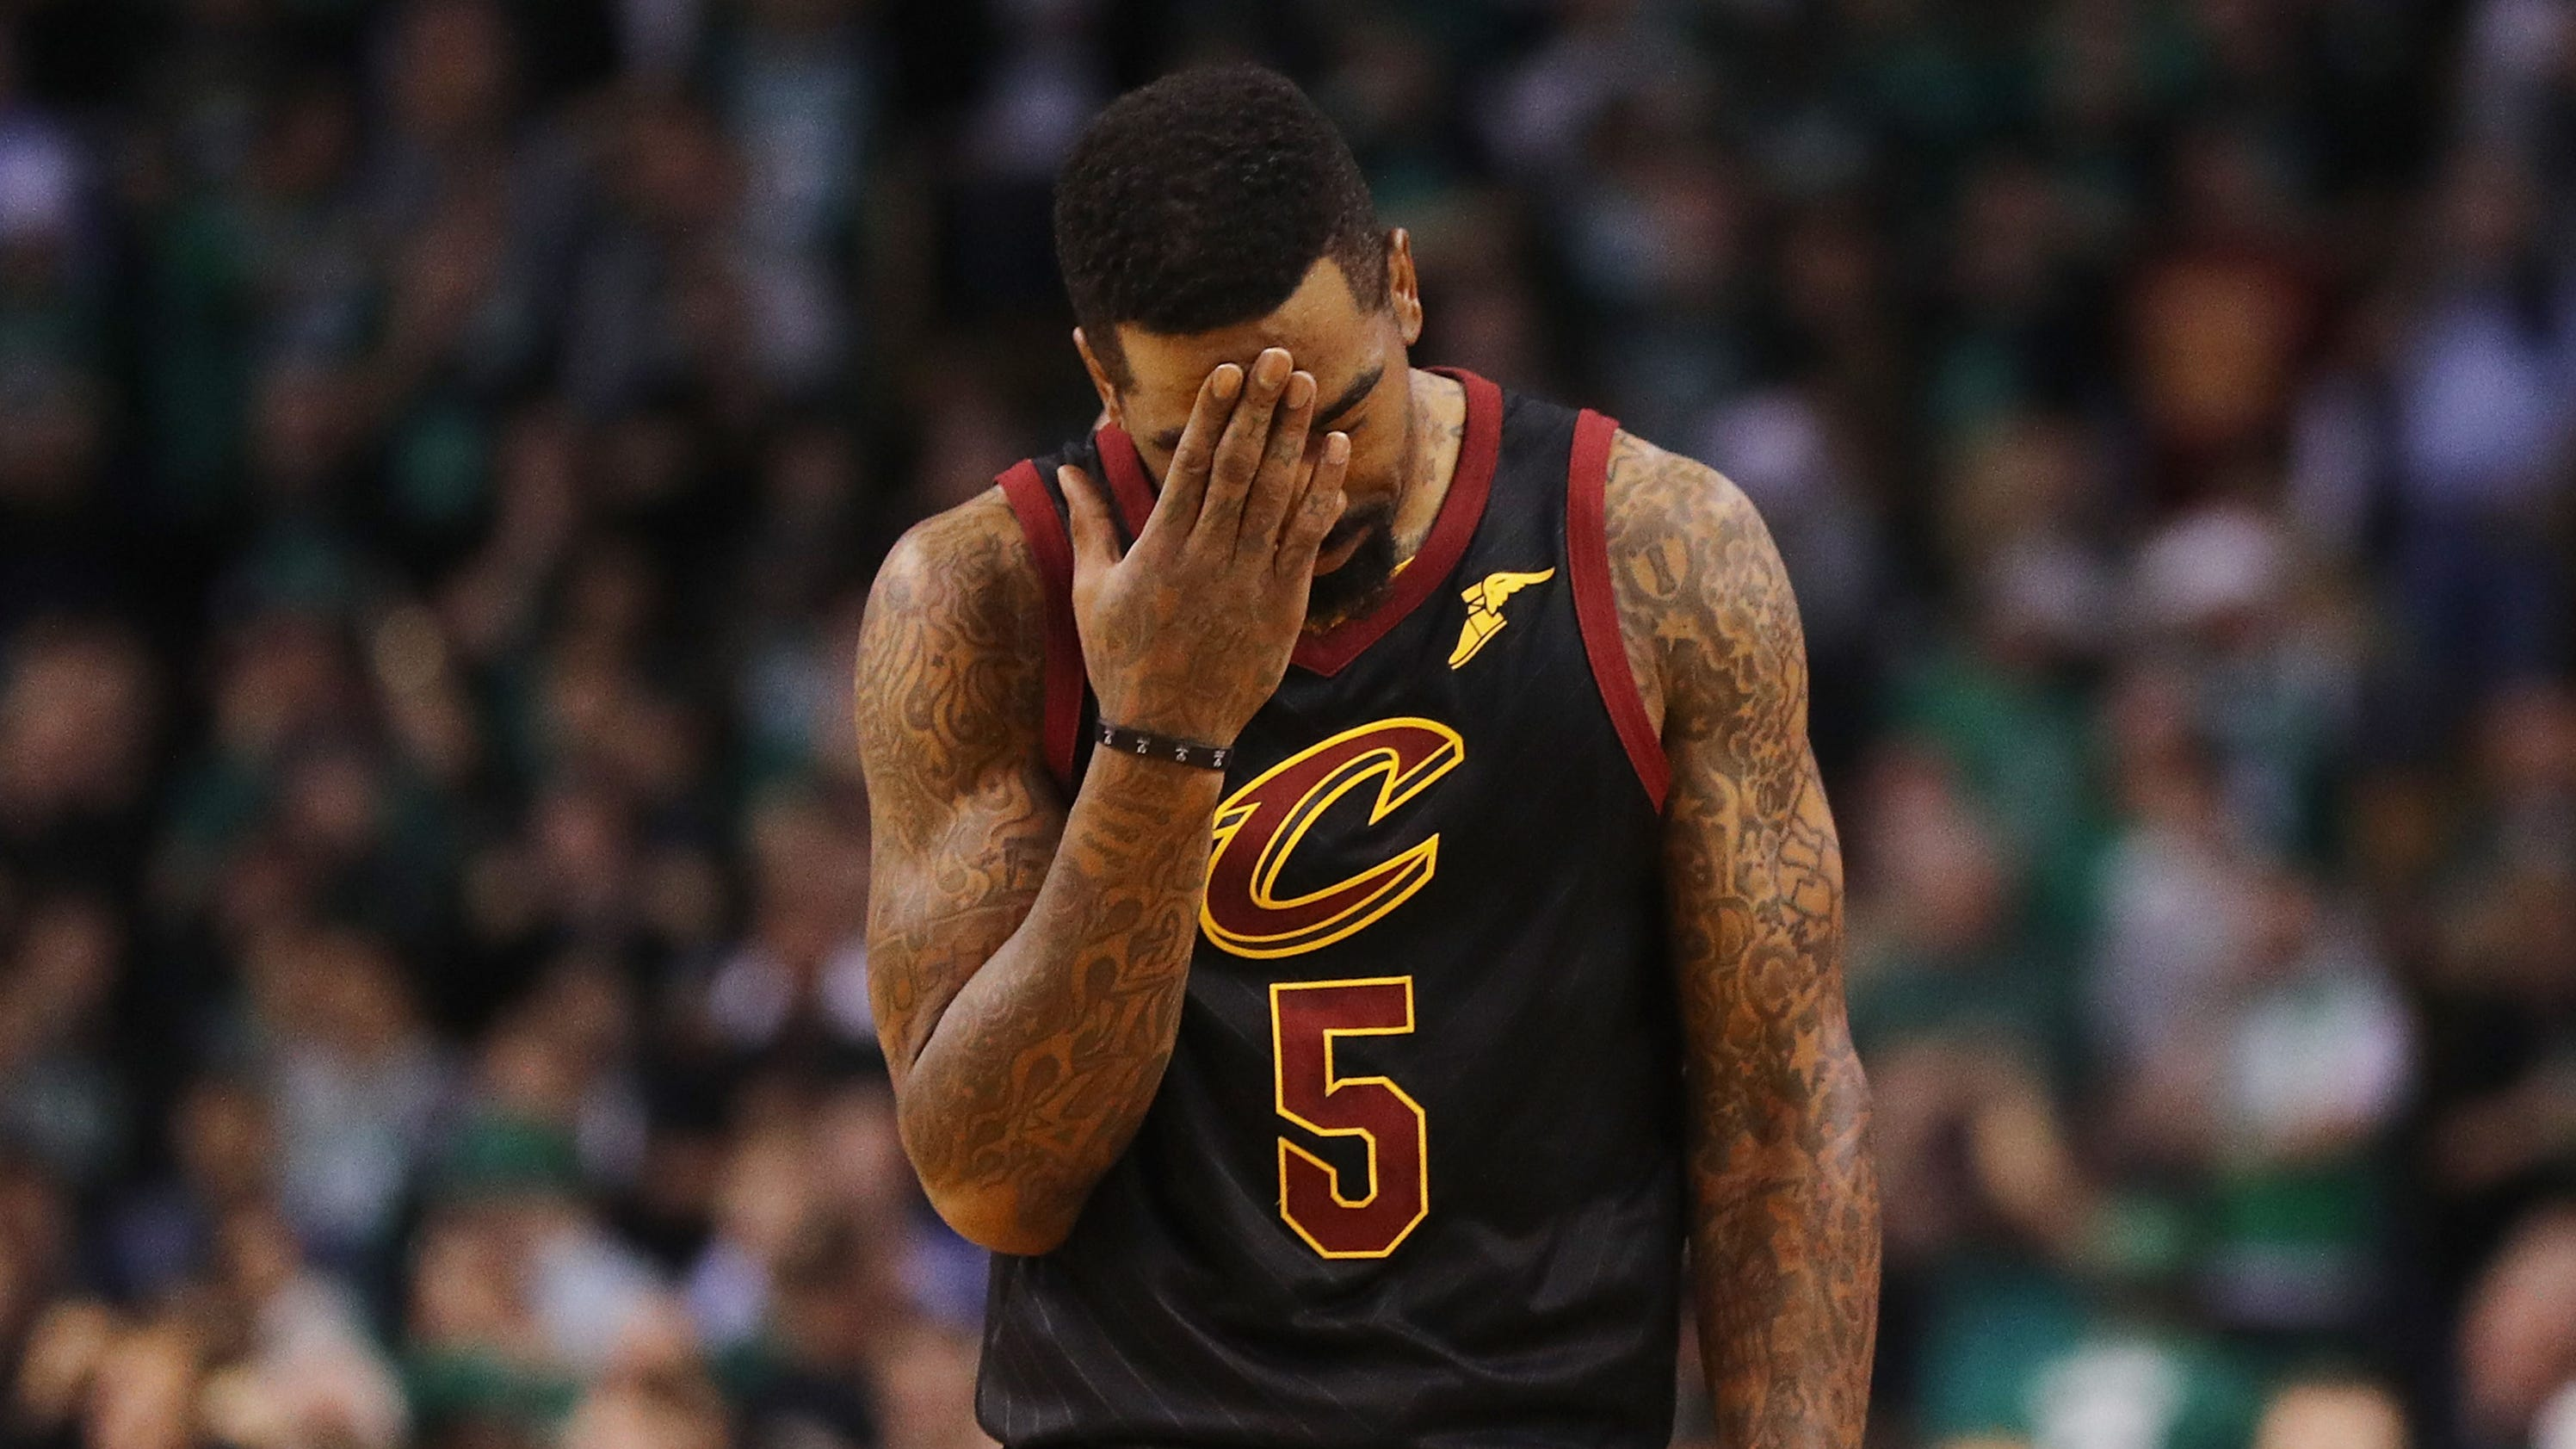 NBA players also couldn't believe J.R. Smith's blunder in Game 1